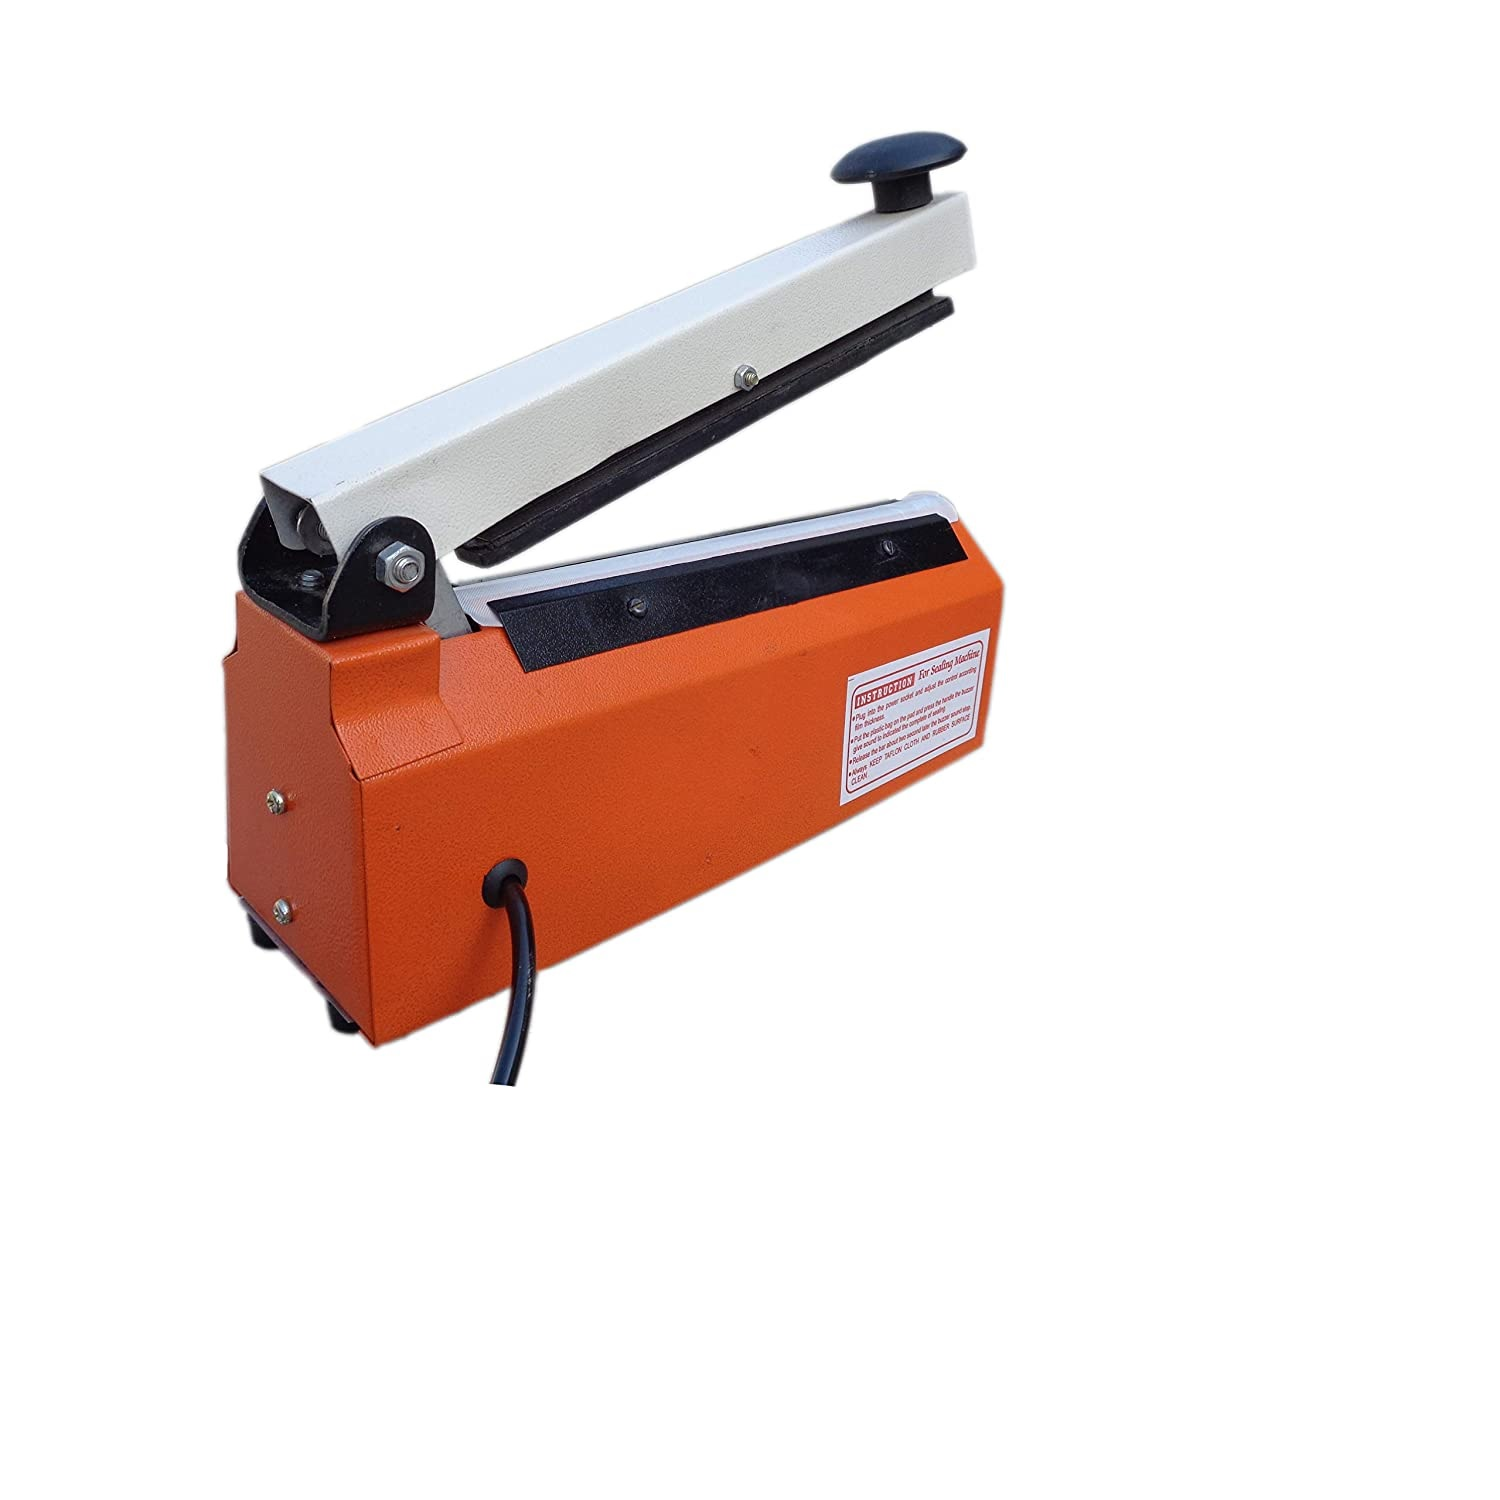 Karsyn Sealing Machine Hand Sealer Machine for Plastics Packaging Plastic Vacuum Manual (8 Inch; Multicolor).